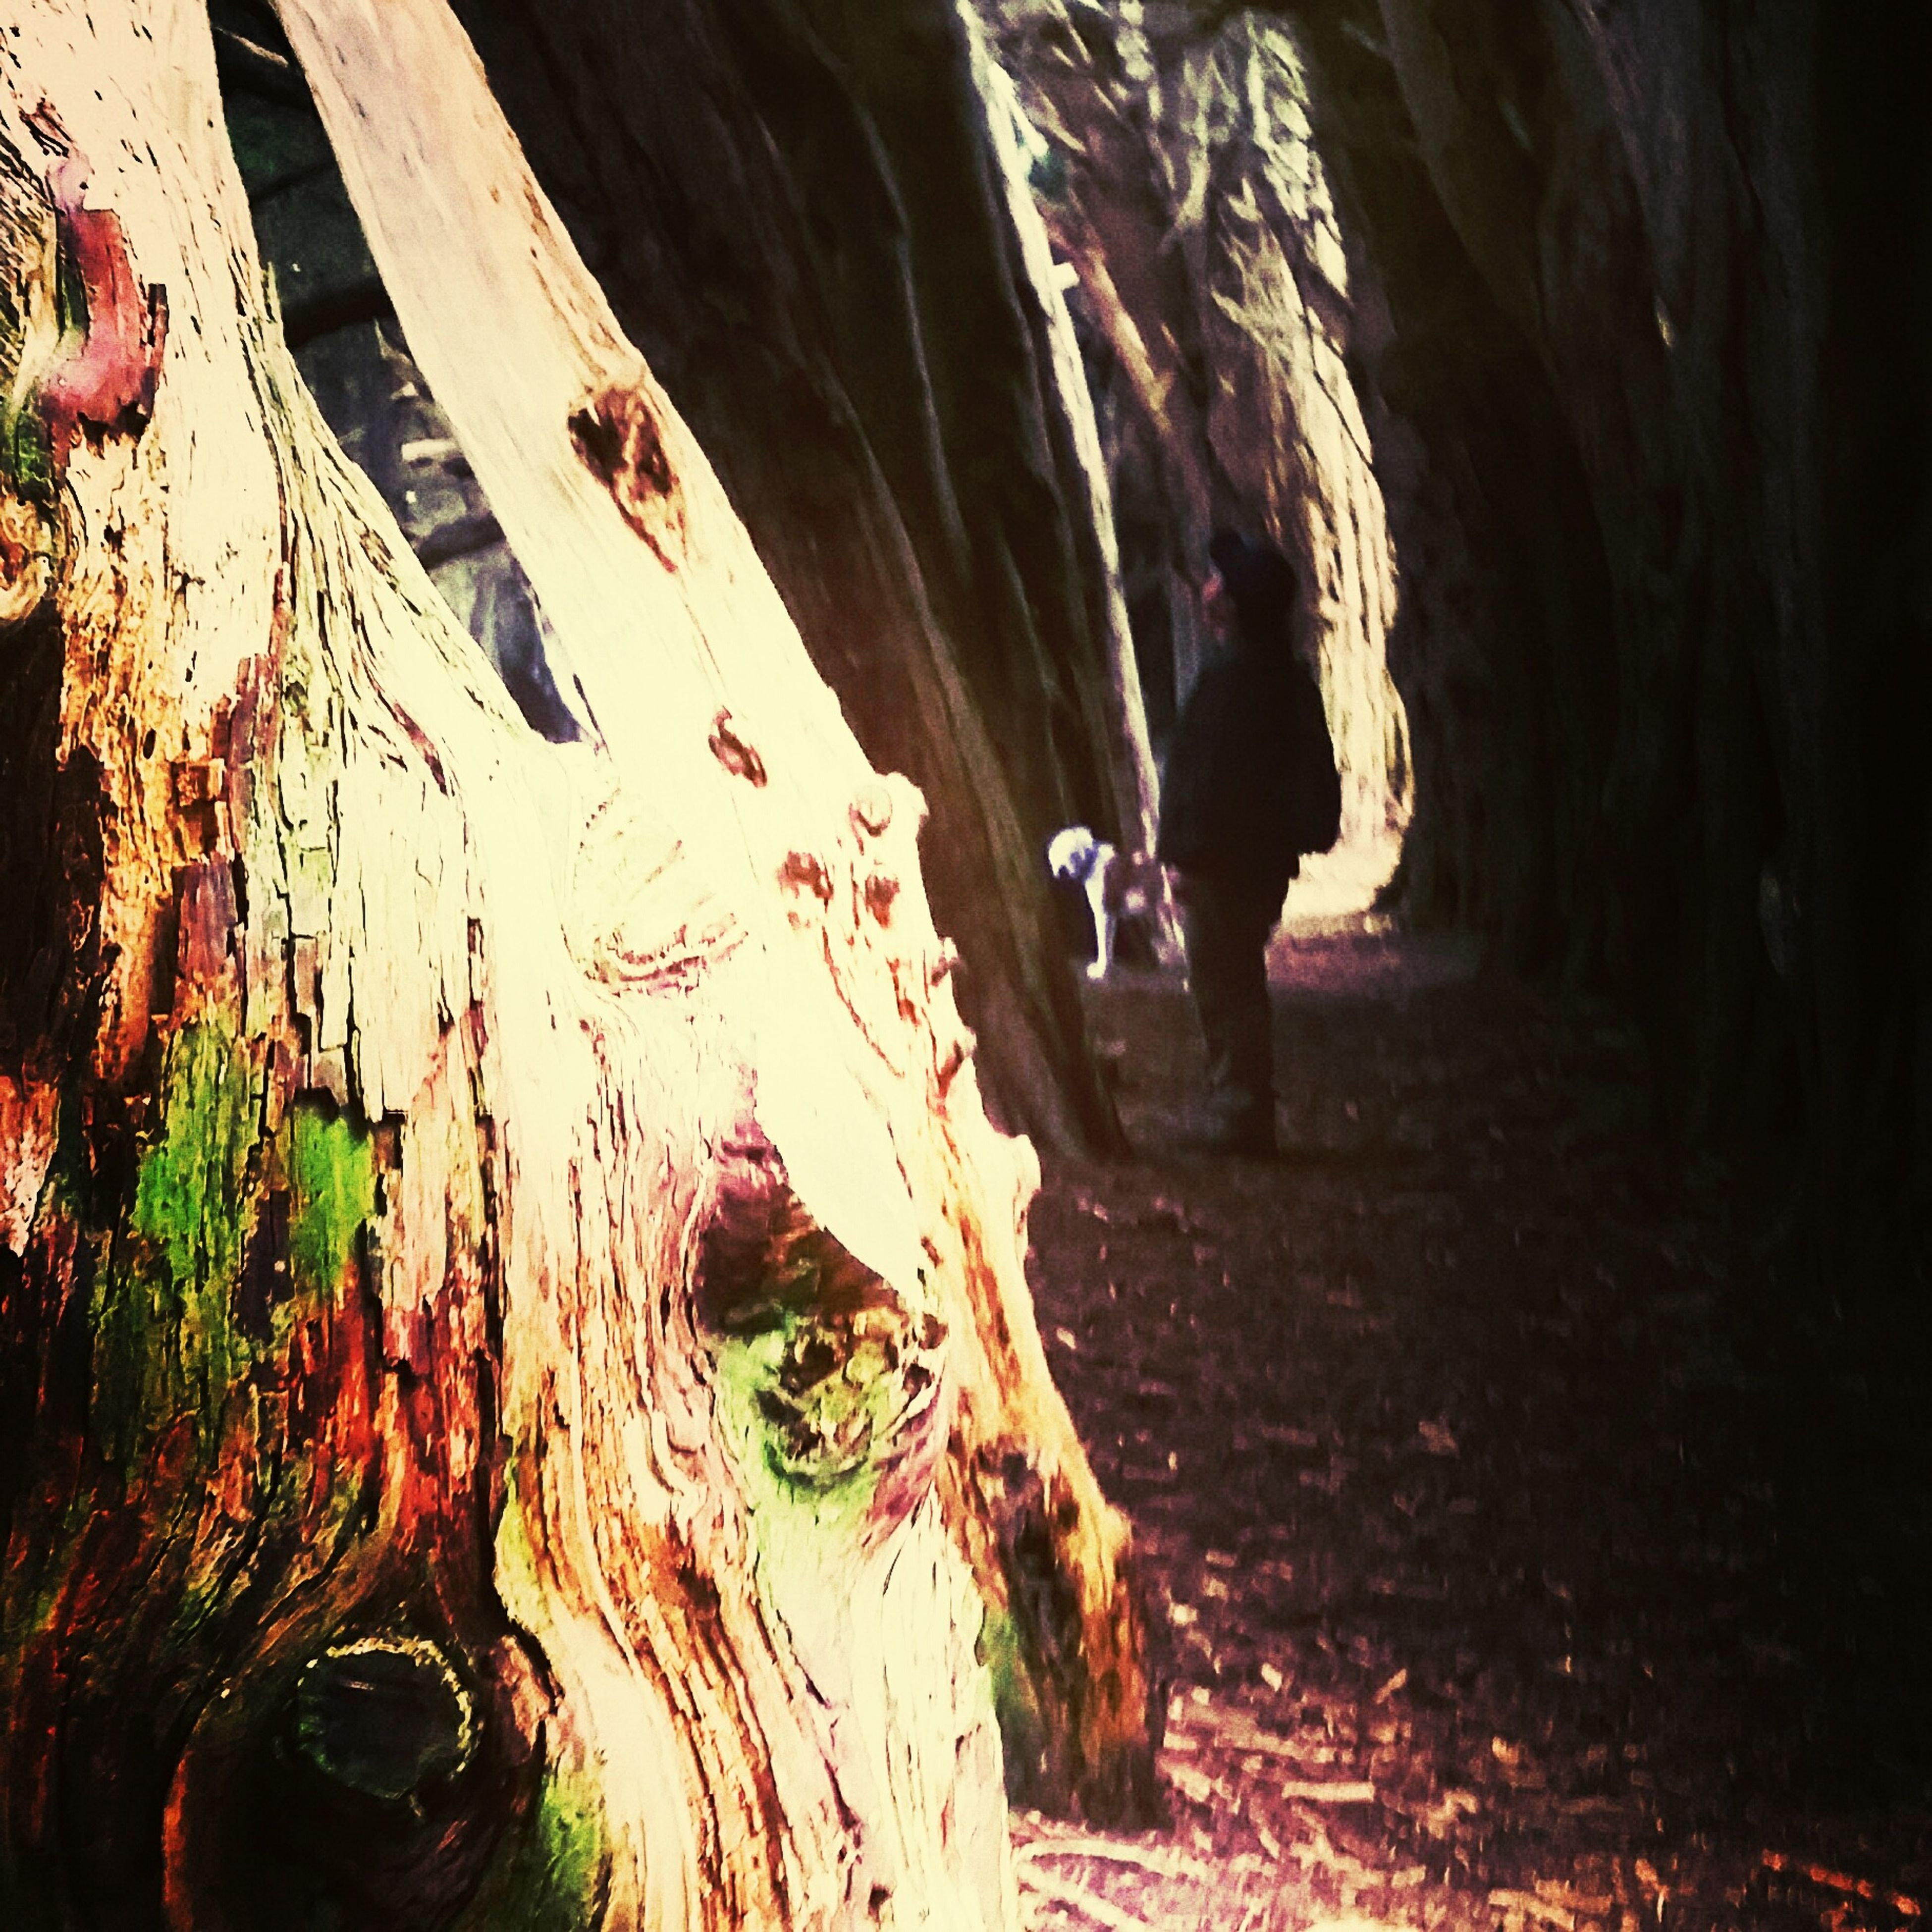 nature, cave, day, outdoors, no people, adventure, beauty in nature, close-up